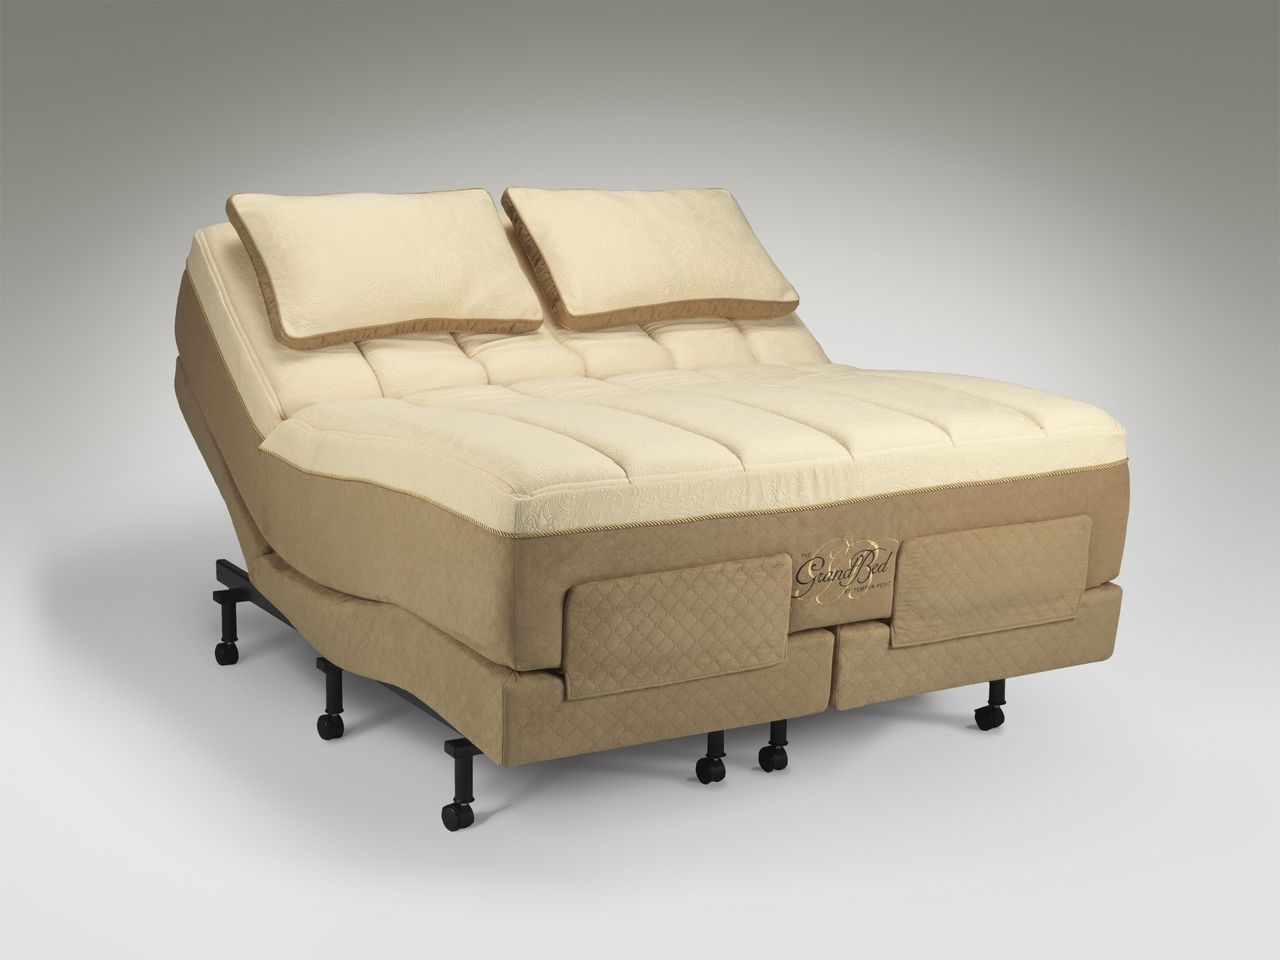 Original Mattress Factory King Bed